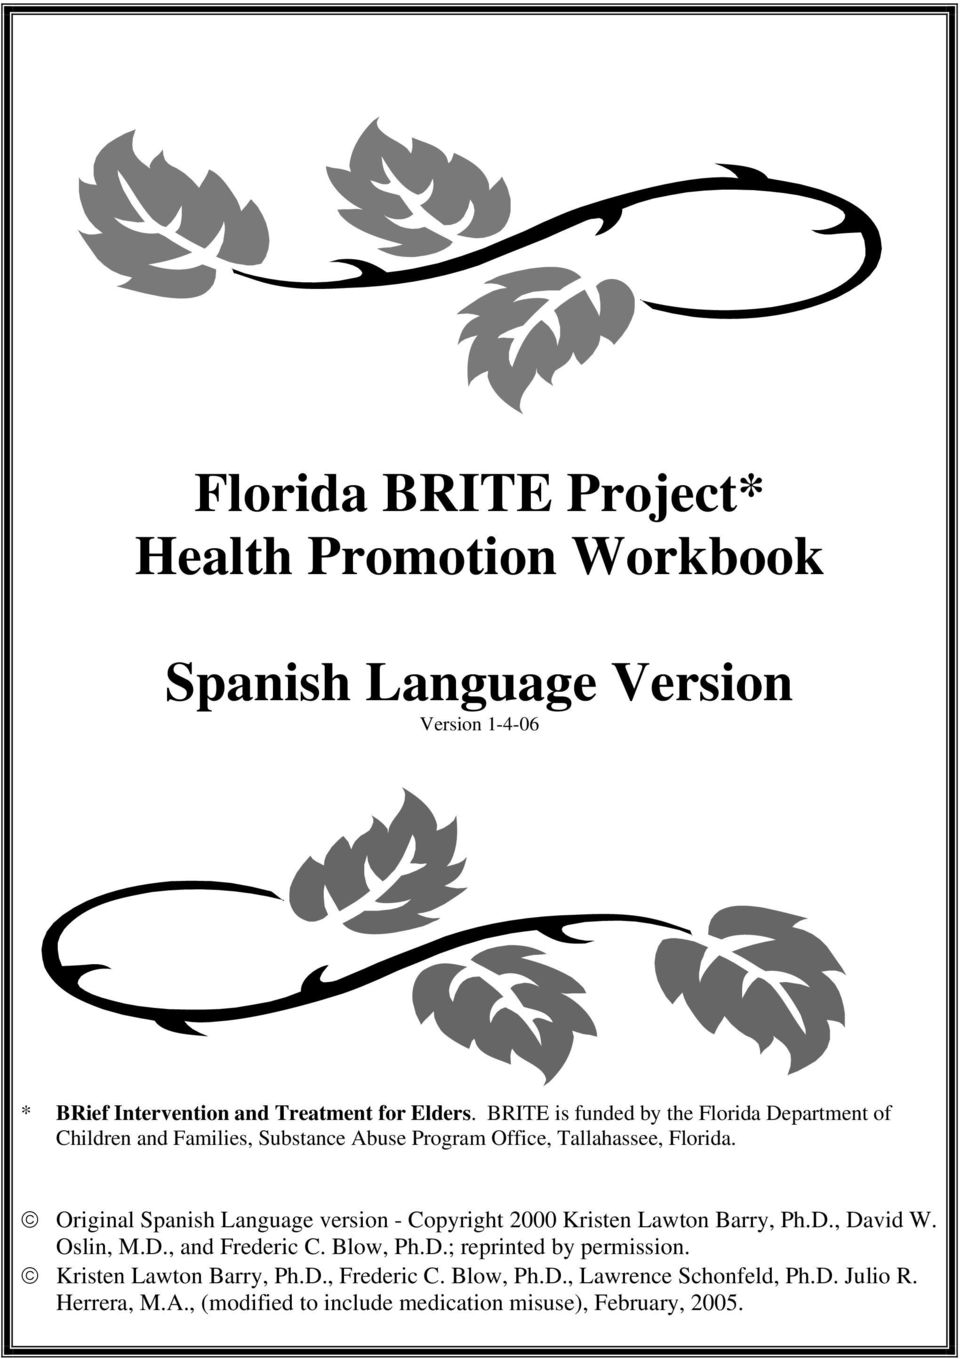 Original Spanish Language version - Copyright 2000 Kristen Lawton Barry, Ph.D., David W. Oslin, M.D., and Frederic C. Blow, Ph.D.; reprinted by permission.